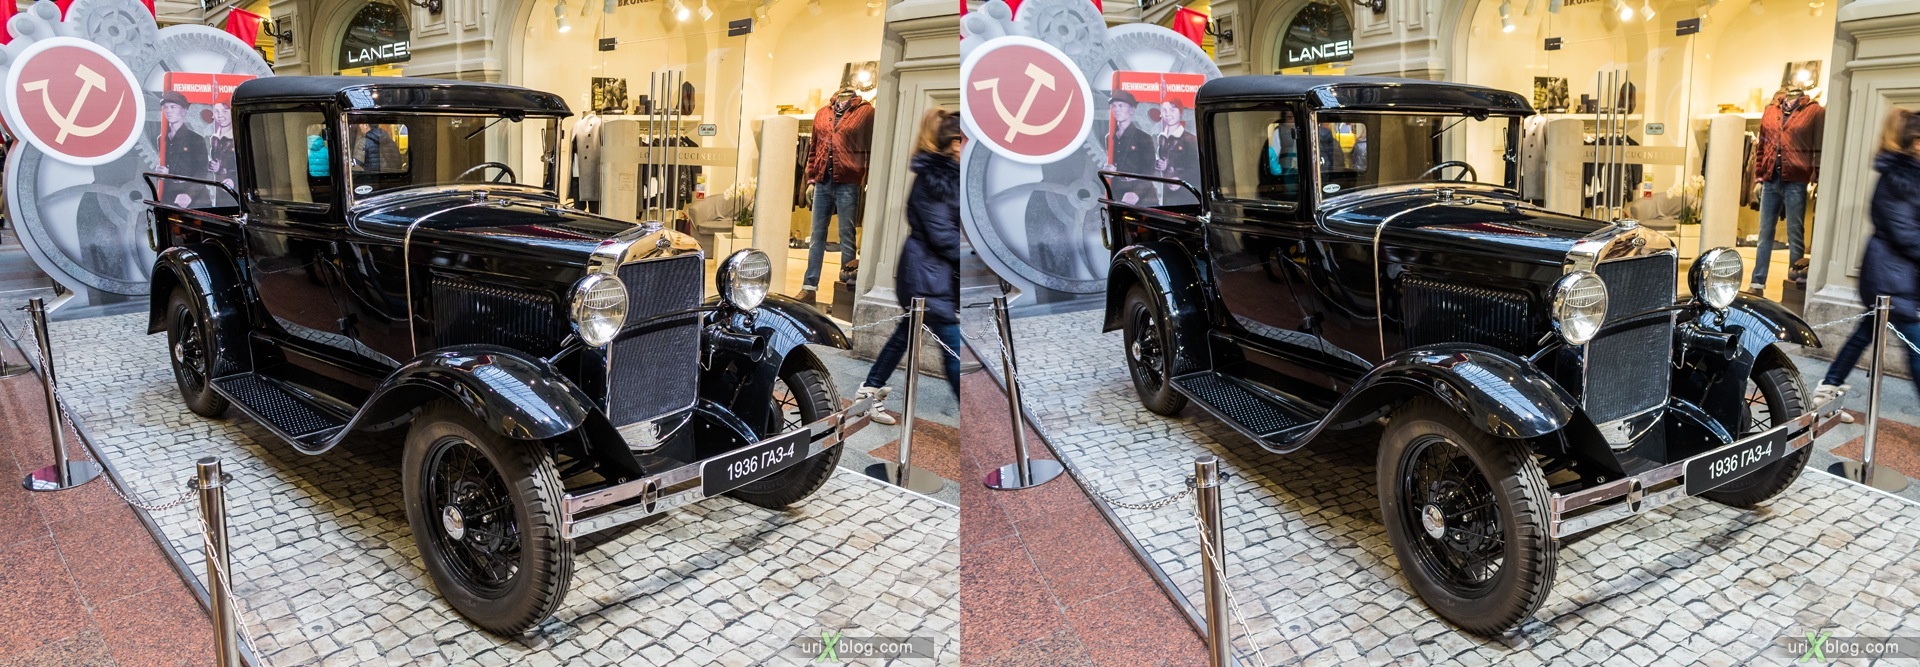 2013, Moscow, Russia, GAZ-4, GUM, old, automobile, vehicle, exhibition, shop, mall, 3D, stereo pair, cross-eyed, crossview, cross view stereo pair, stereoscopic